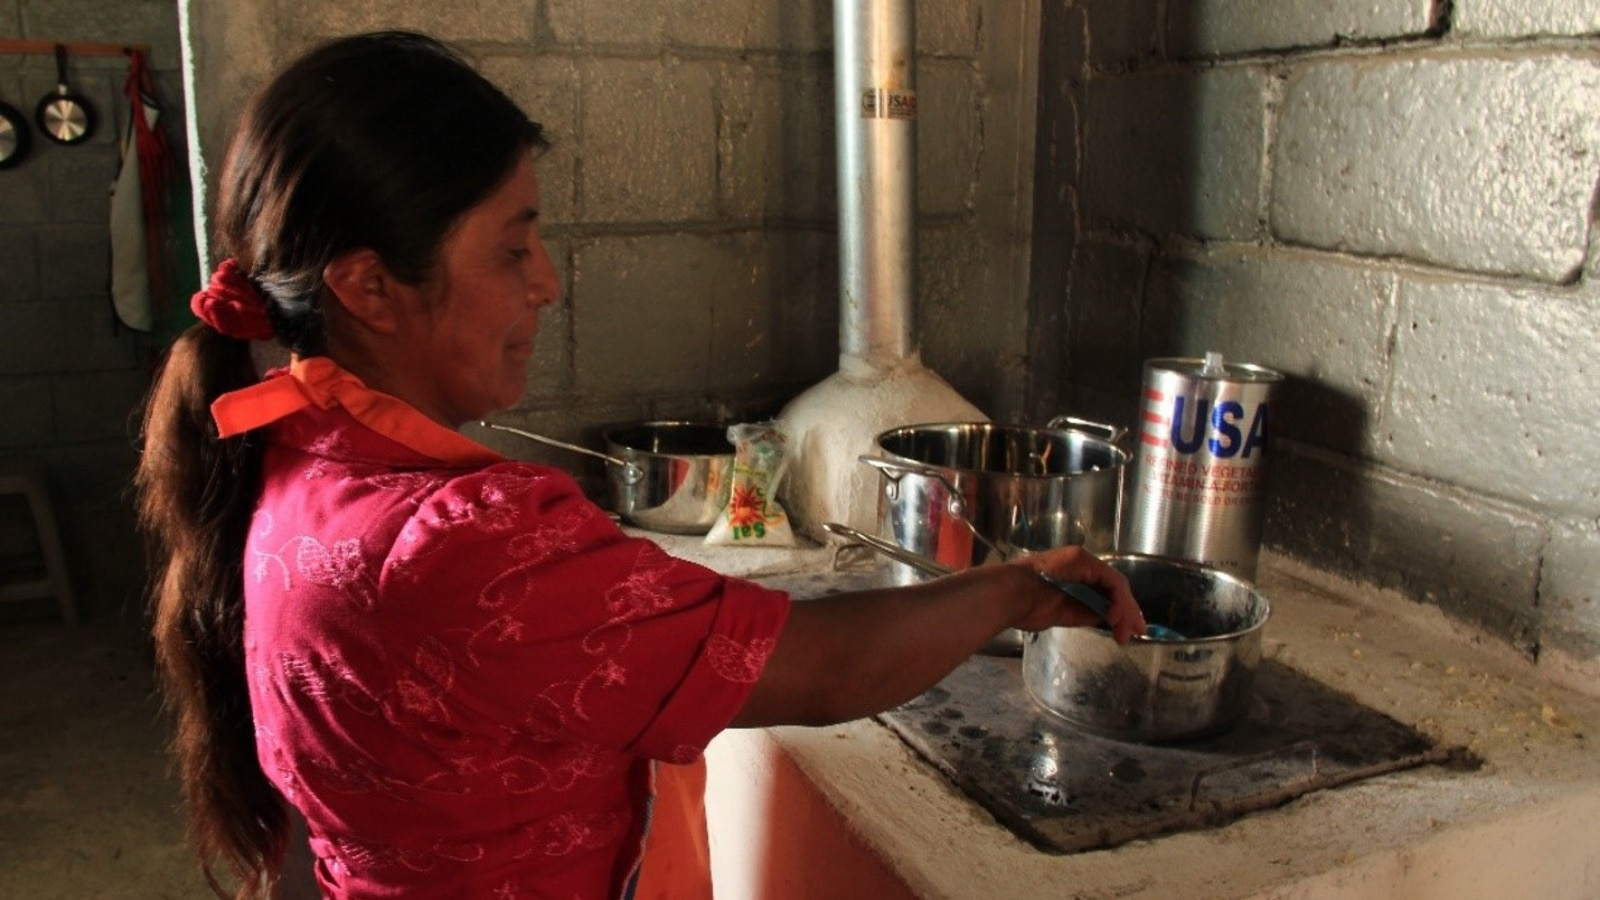 Many women entrepreneurs often operate their businesses out of their homes, pictured here is a Honduran woman working from her kitchen. (Photo courtesy of USAID)